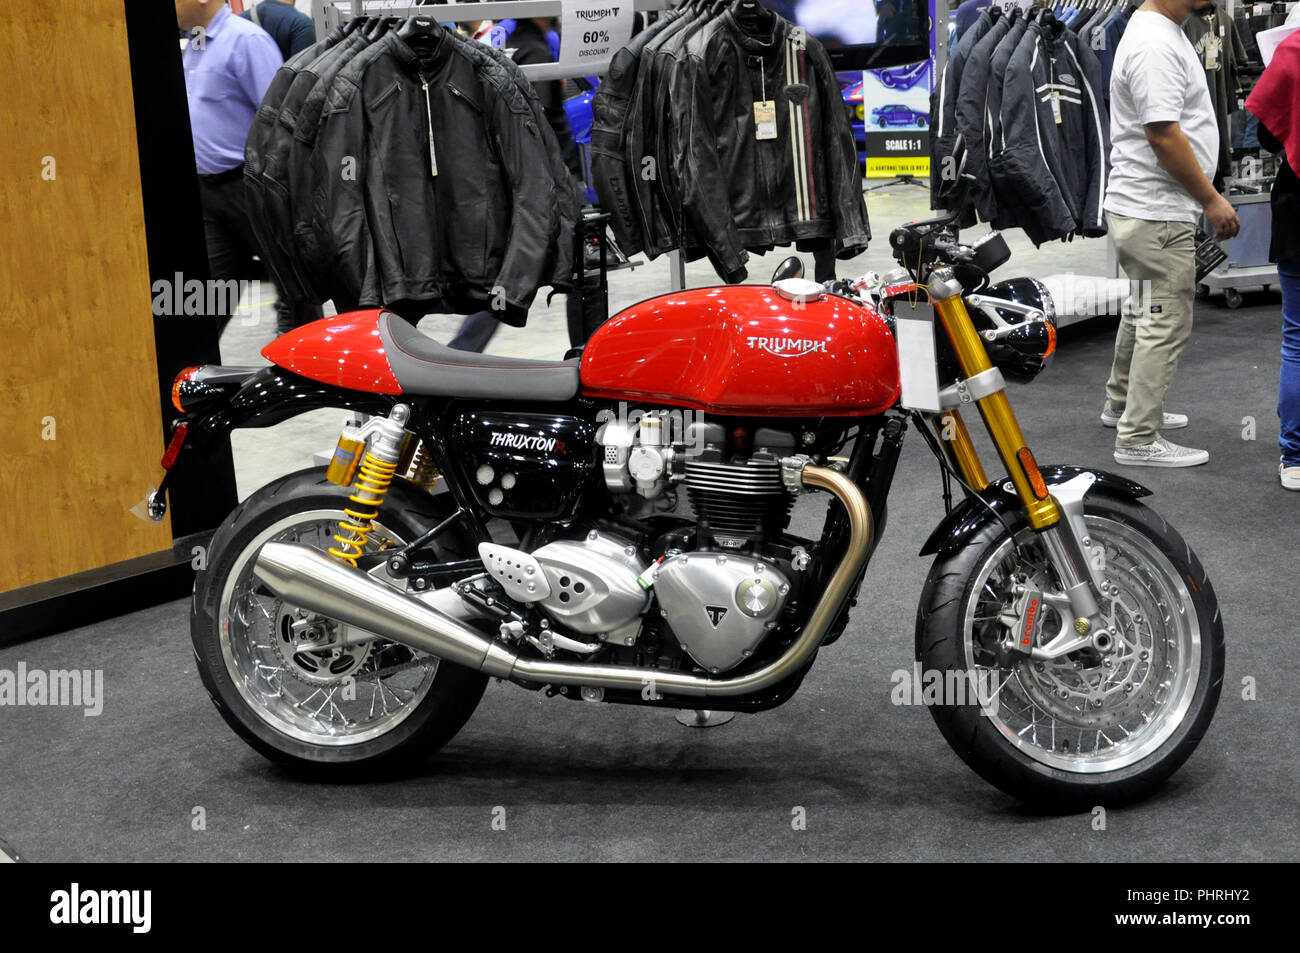 Big bike and custom motorcycle in huge showroom. Displayed to crowd for sale. - Stock Image